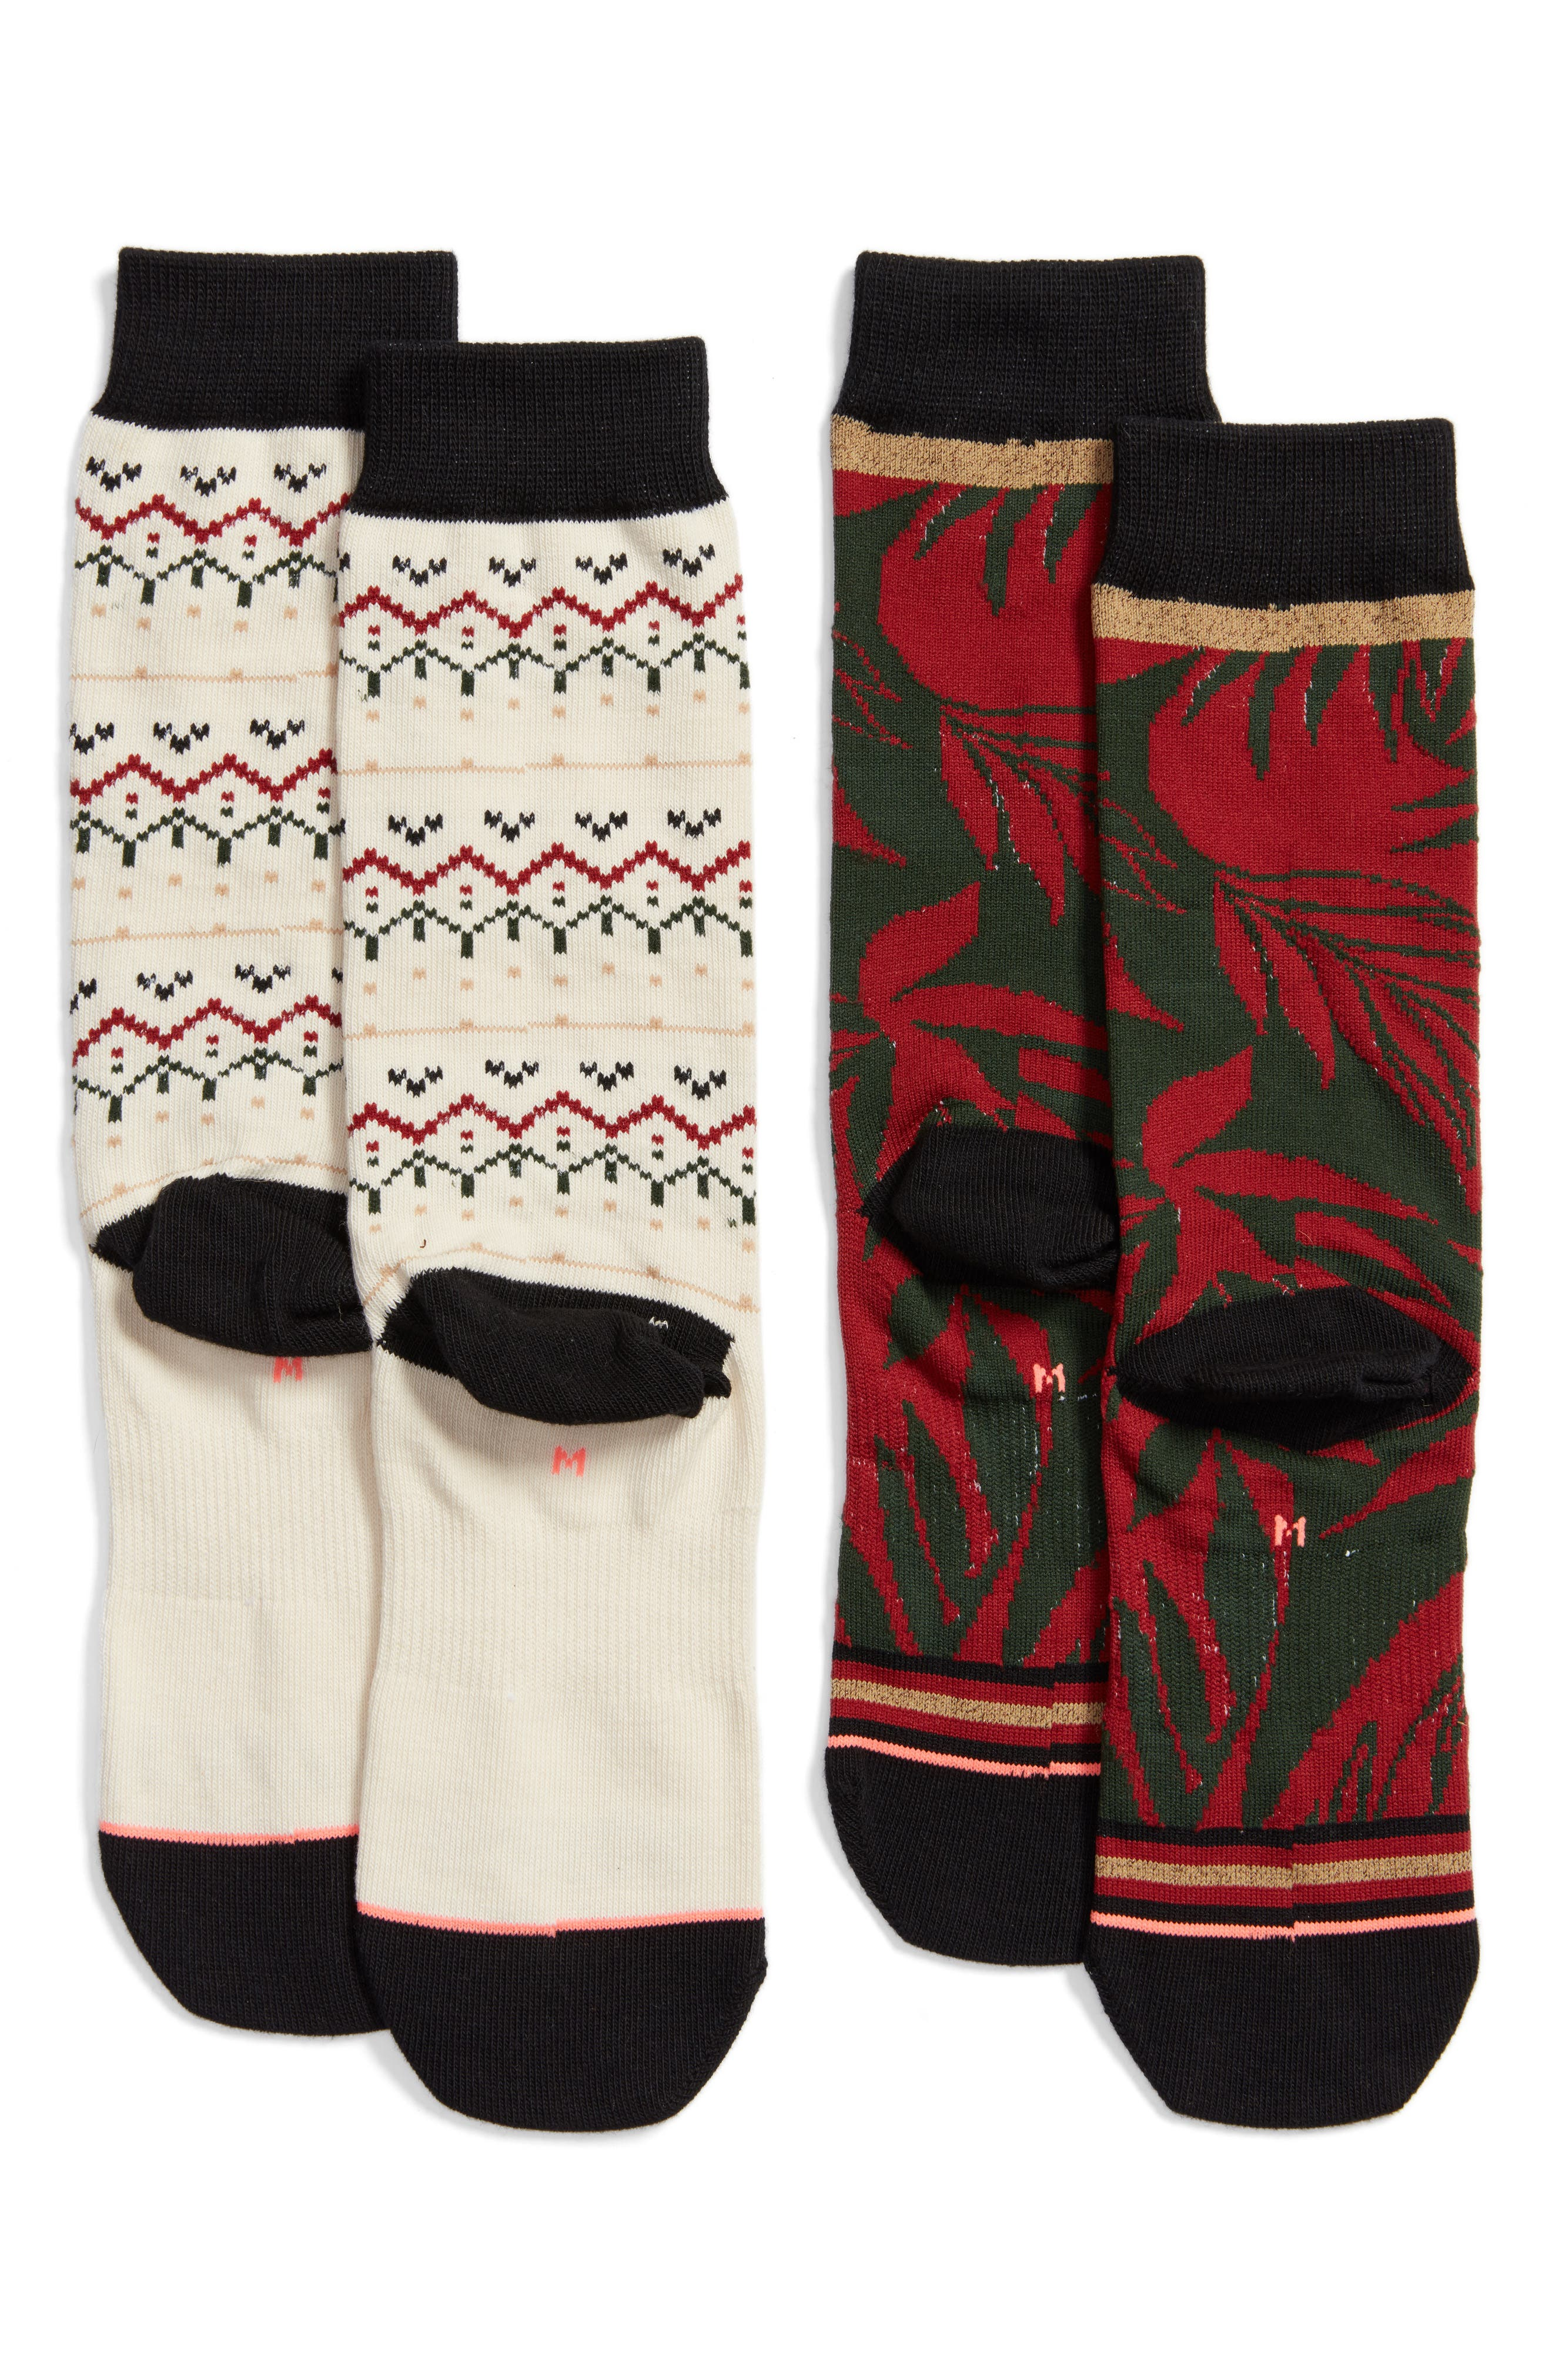 2-Pack Holiday Socks,                             Alternate thumbnail 2, color,                             930